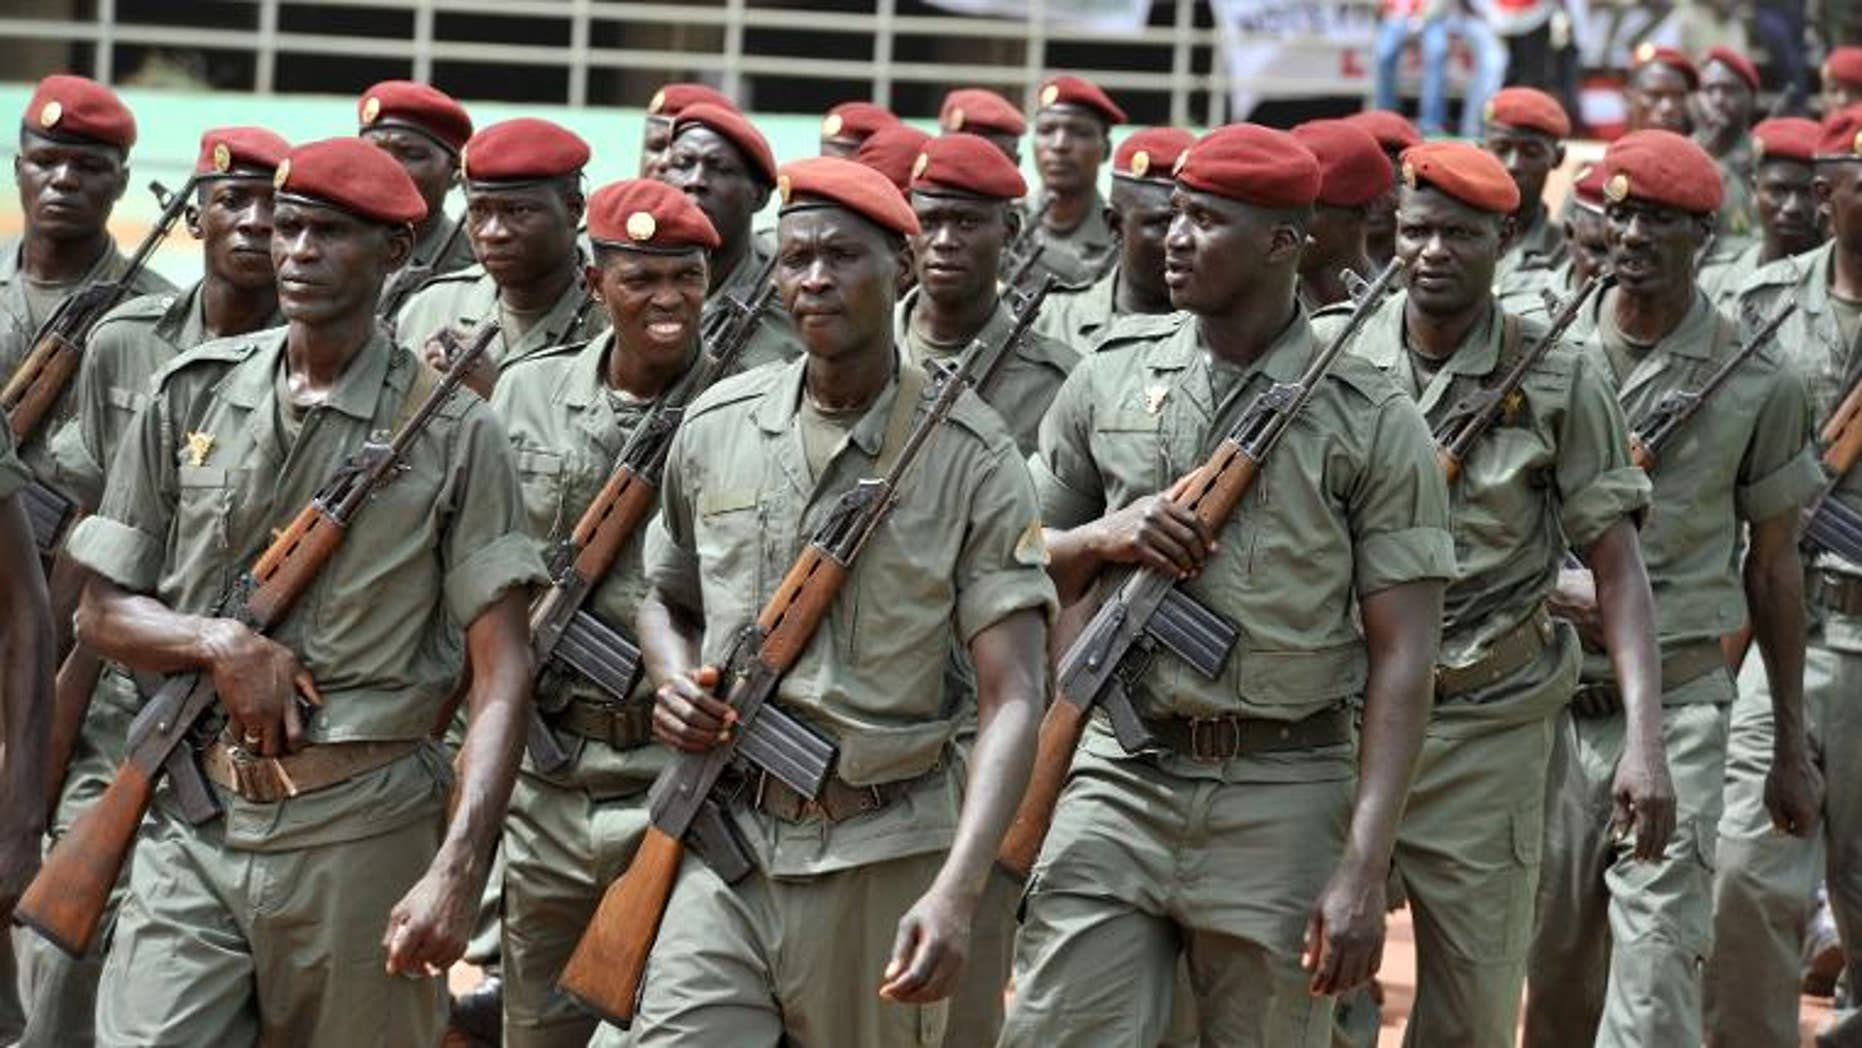 Army forces march during the inauguration of Mali's new president on September 19, 2013 in Bamako